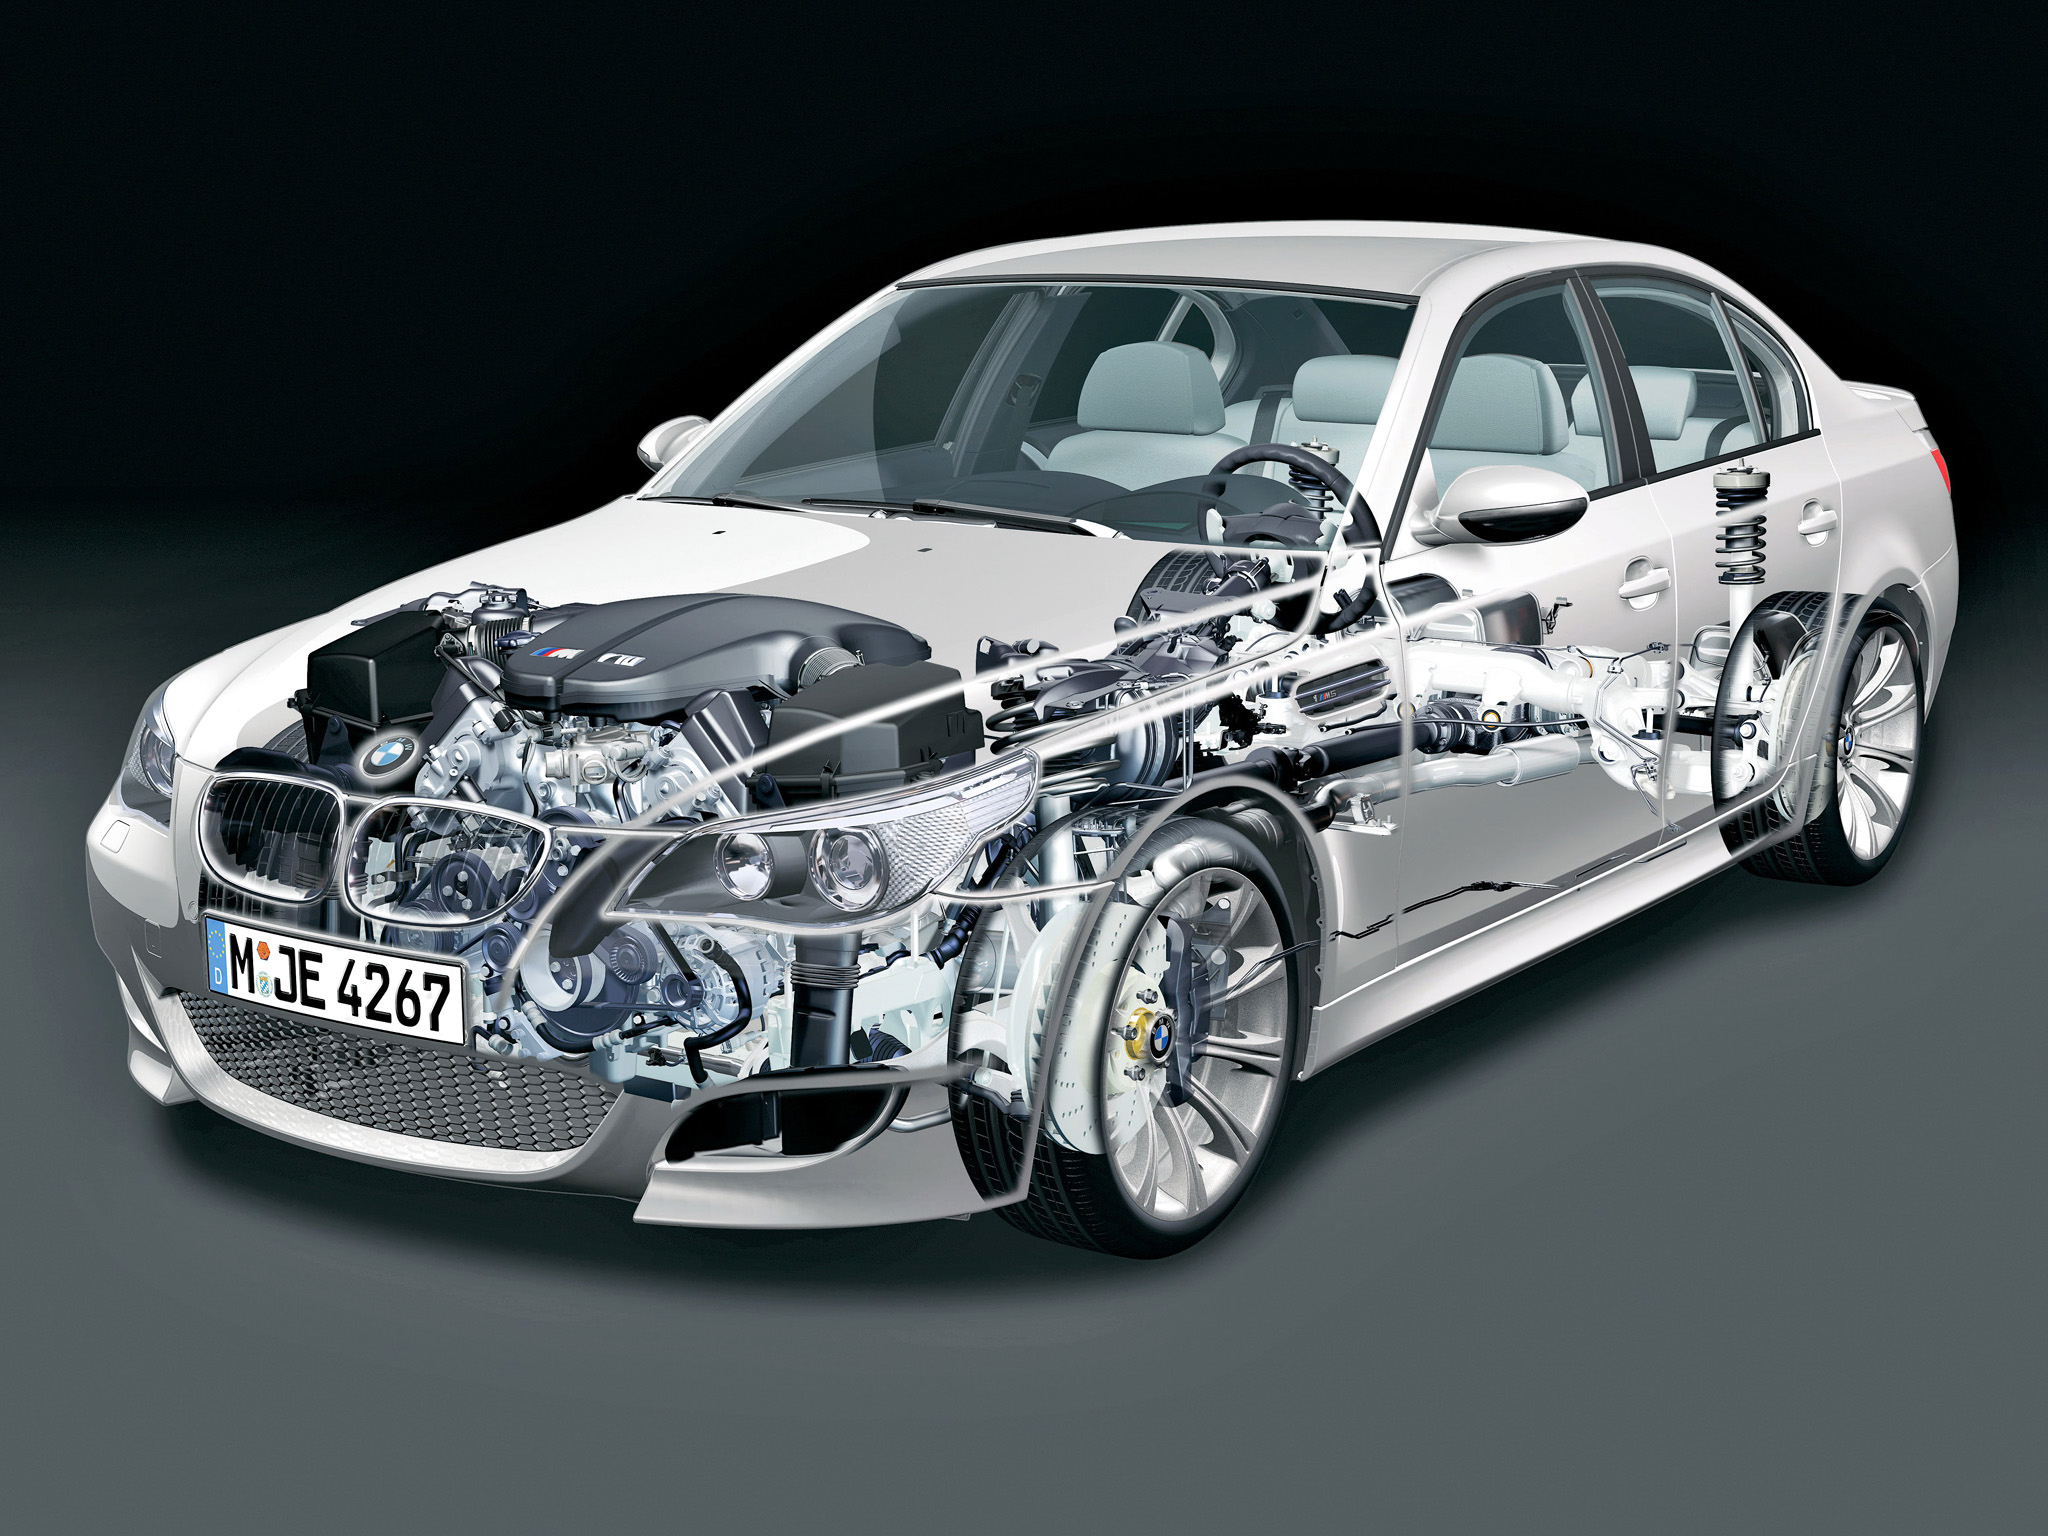 Bmw Cutaway Illustrations Are Everything You Ever Wanted Photo Gallery on Engine Cutaway Diagram